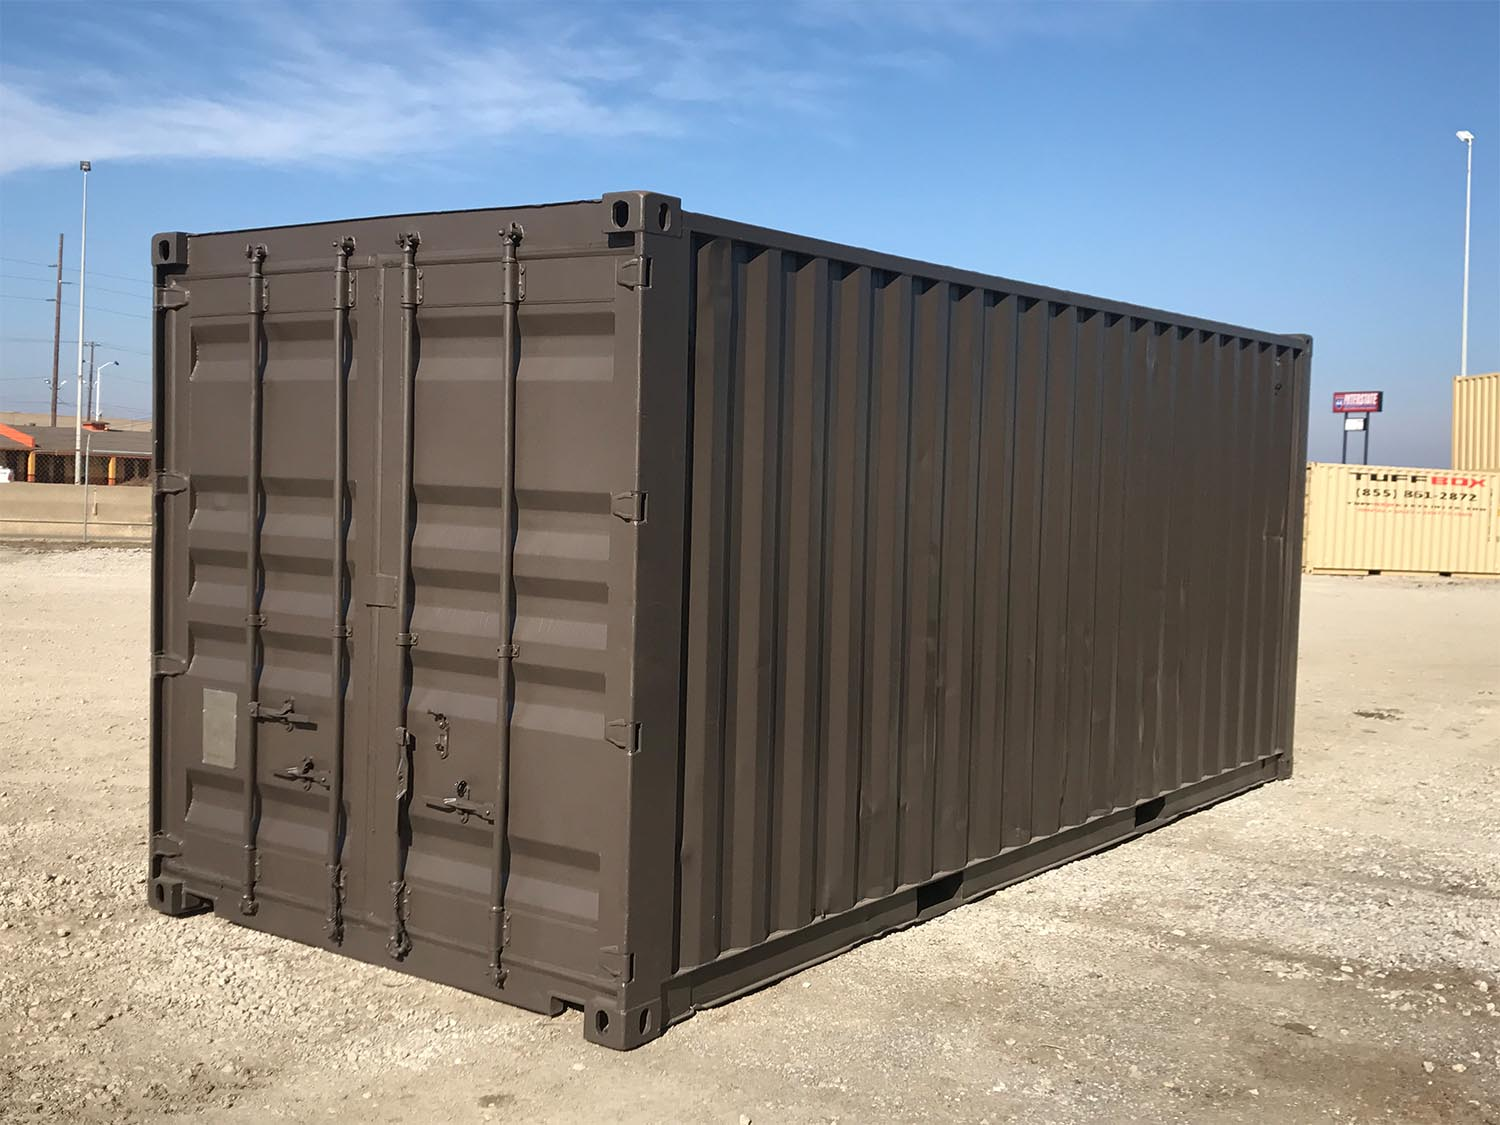 shipping container painted brown